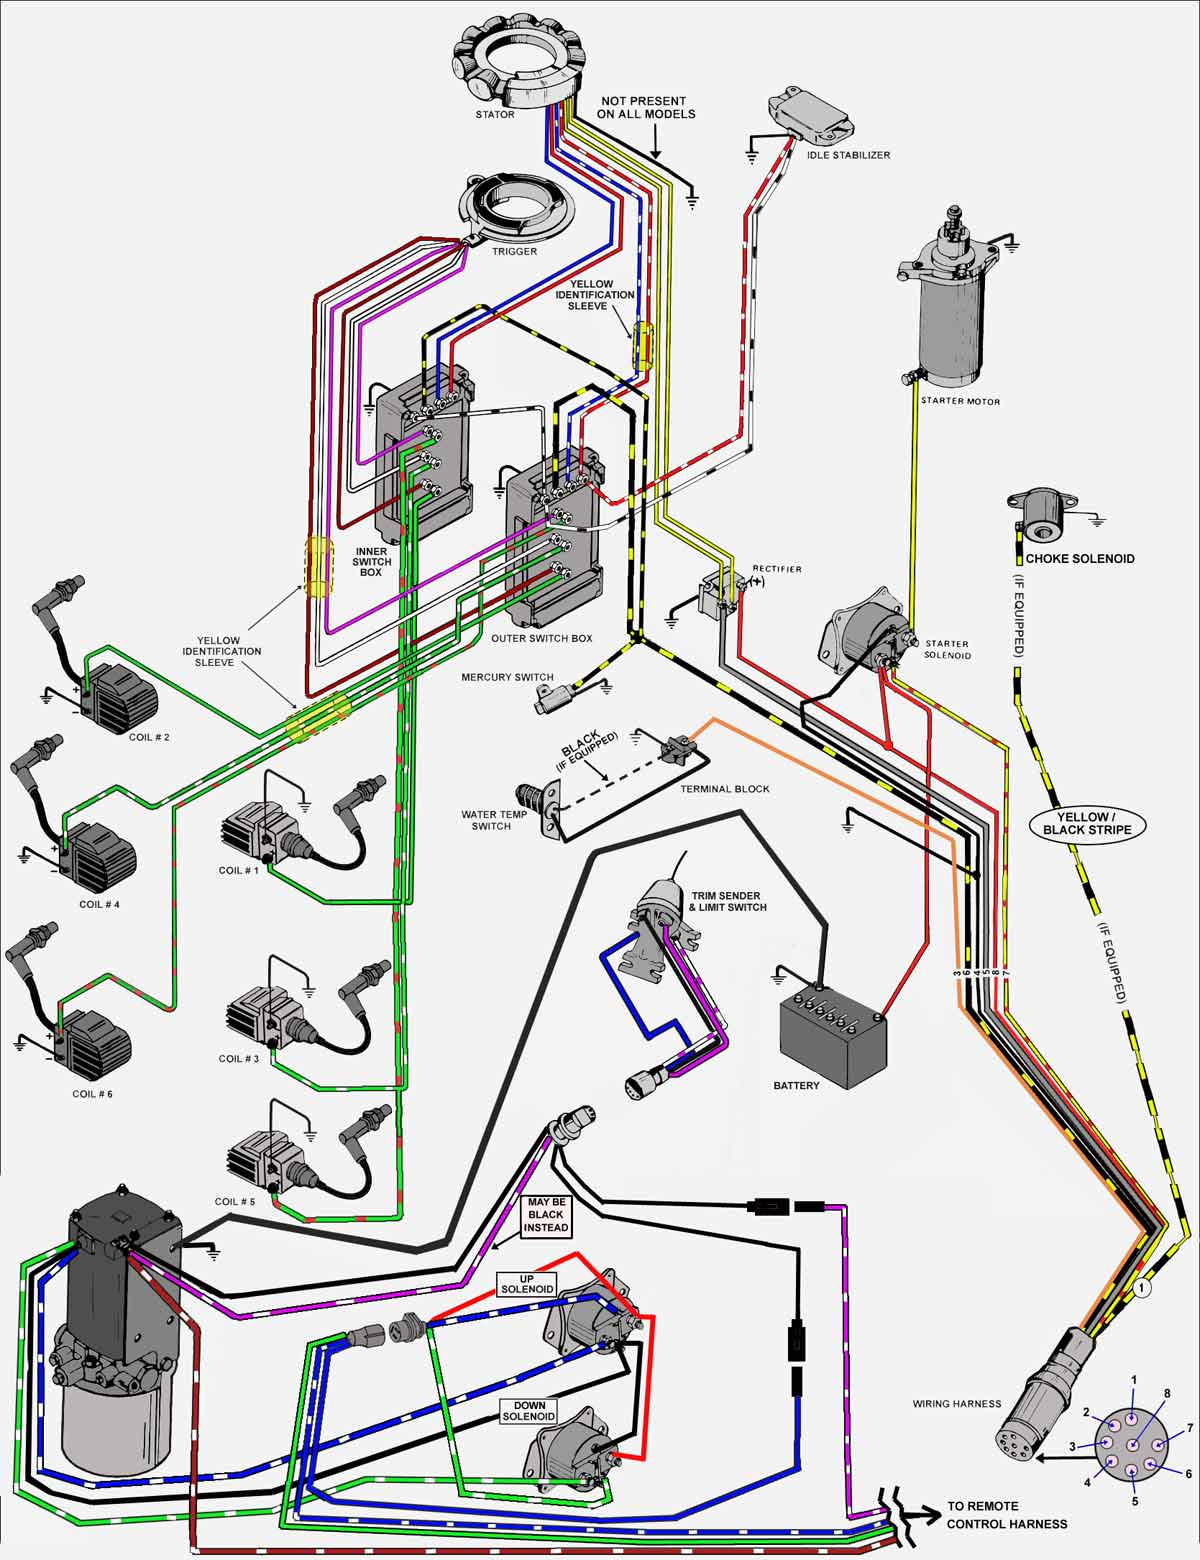 175 Hp Mercury Outboard Wiring Diagram Good 1st 25 Diagrams Mastertech Marin Rh Maxrules Com 90